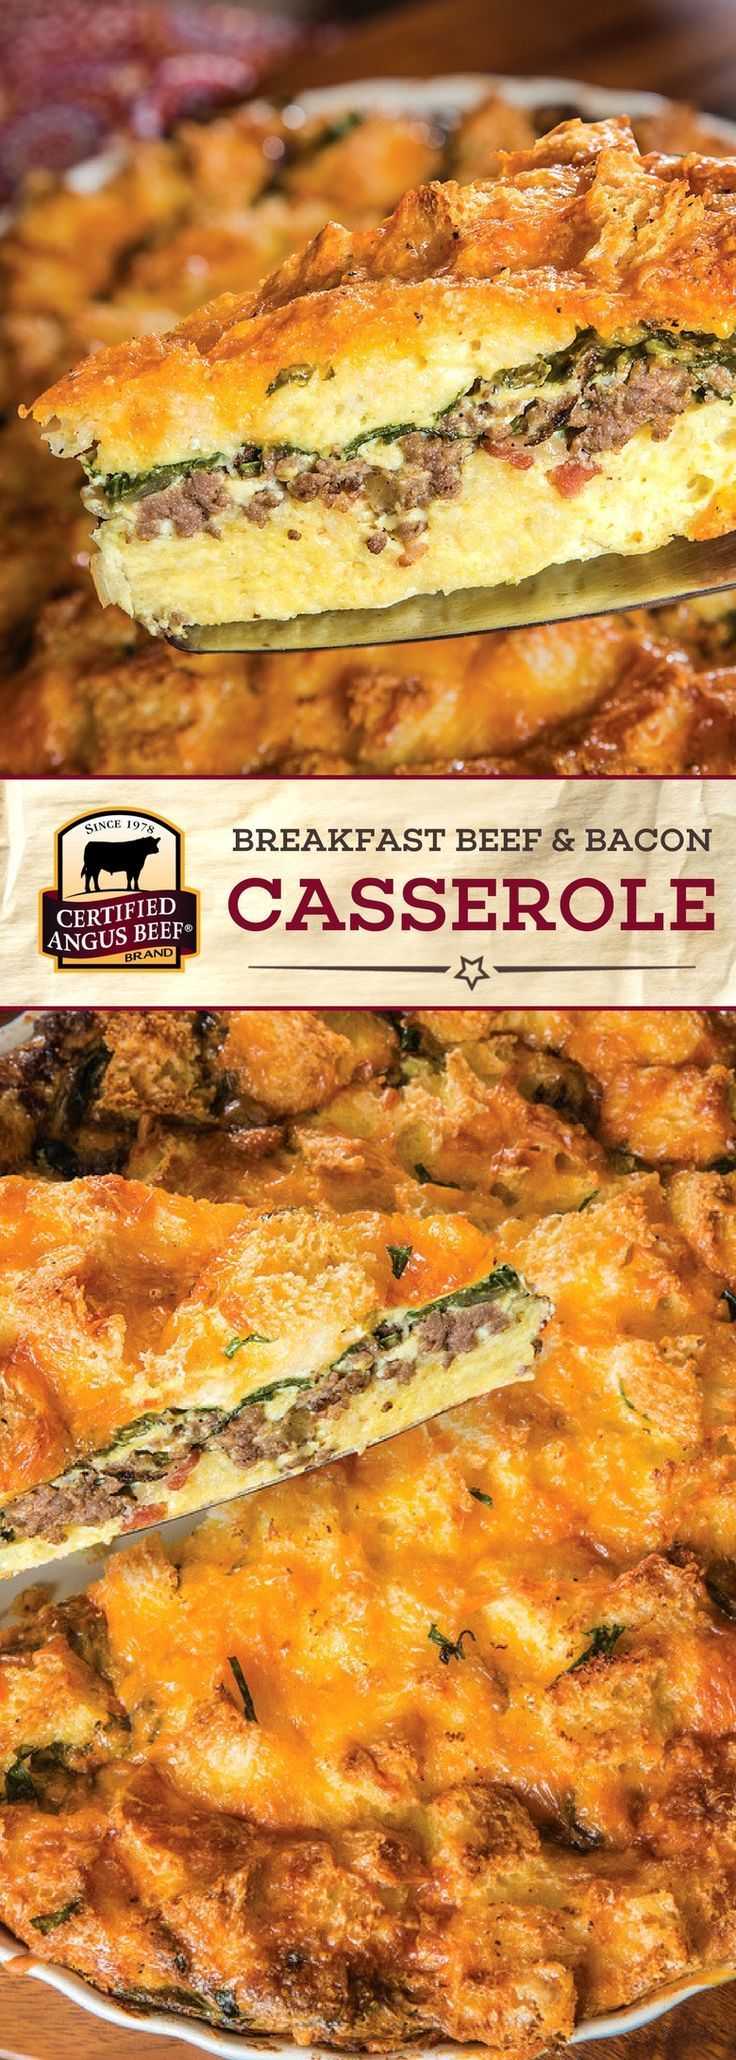 Certified Angus Beef®️️️️️️️ brand Breakfast Beef & Bacon Casserole is an EASY recipe that you can make ahead of time! This DELICIOUS casserole recipe is made with the best ground beef, bacon, and CHEESE for a perfectly seasoned and heartwarming breakfast. Perfect for a family gathering! #bestangusbeef #certifiedangusbeef #beefrecipe #easyrecipes #breakfastrecipes #casserolerecipes